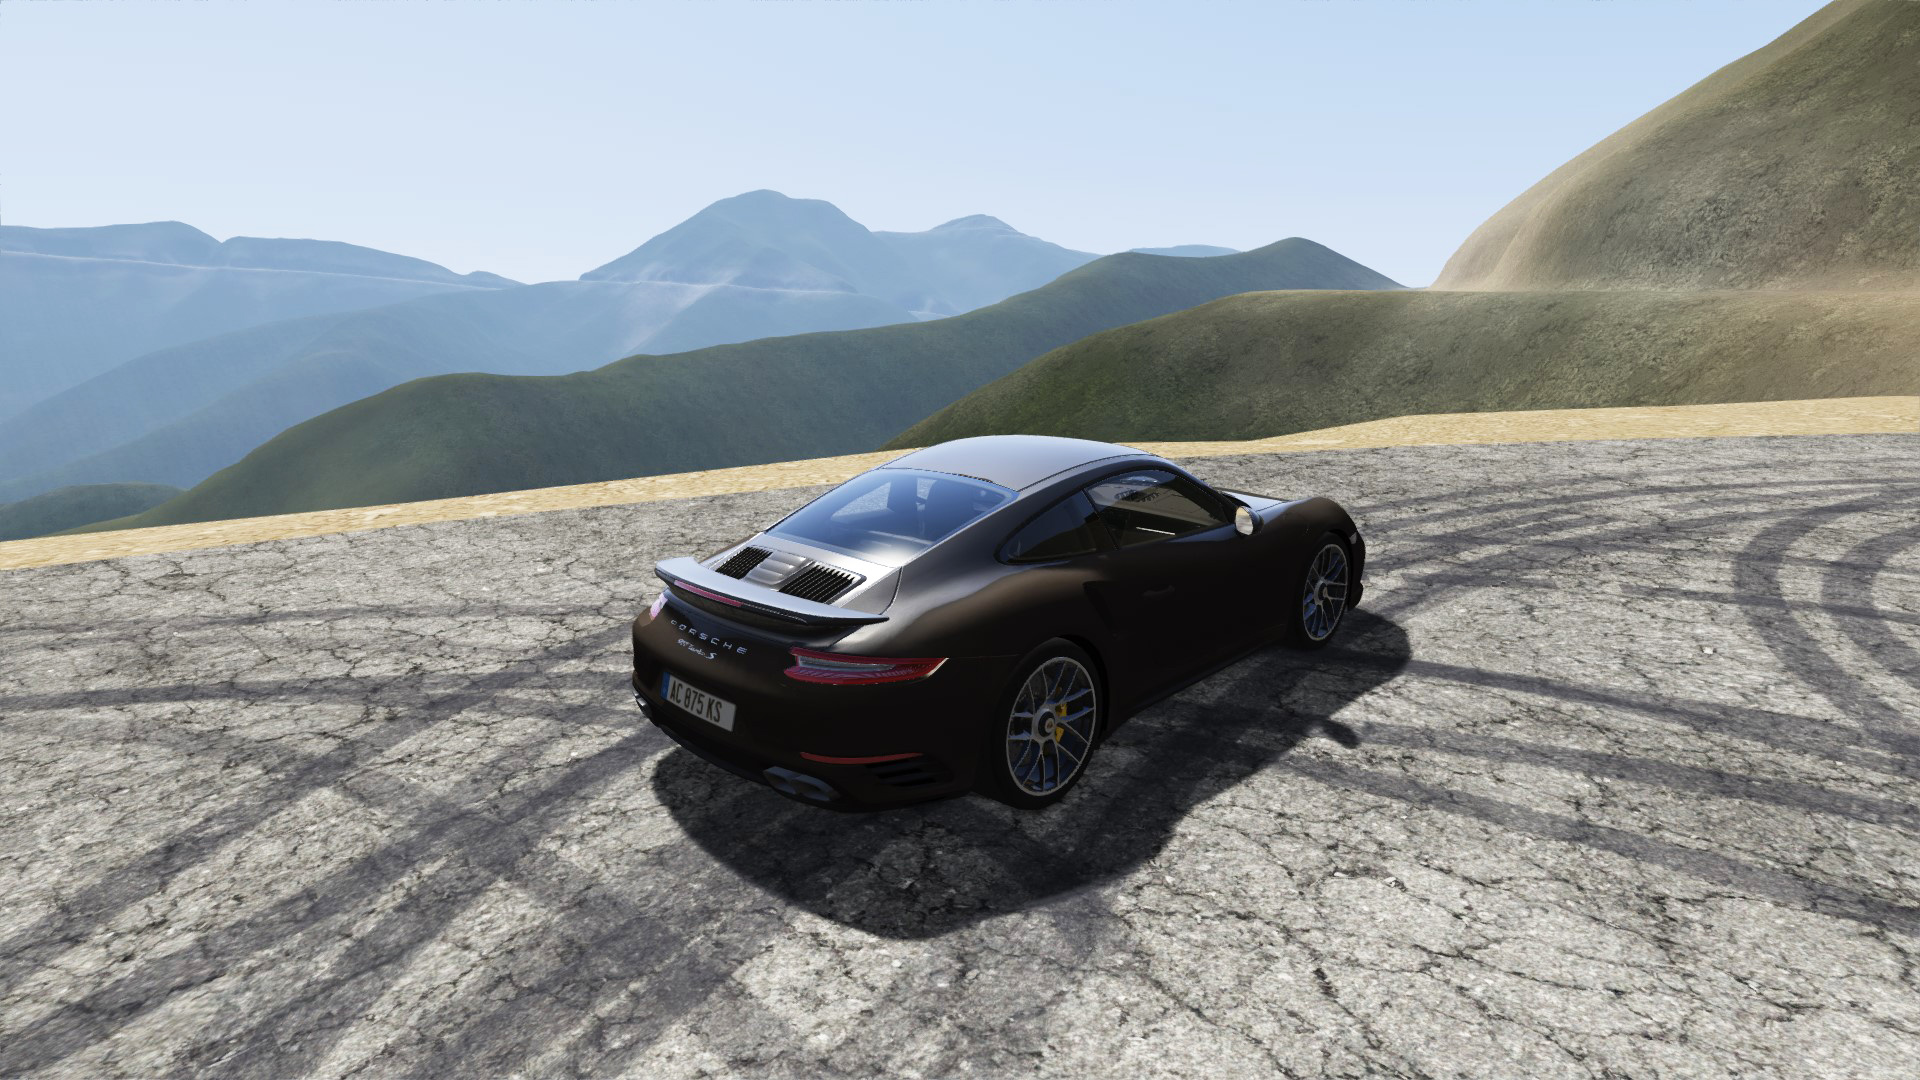 Screenshot_ks_porsche_991_turbo_s_la_canyons_29-5-118-3-38-38.jpg